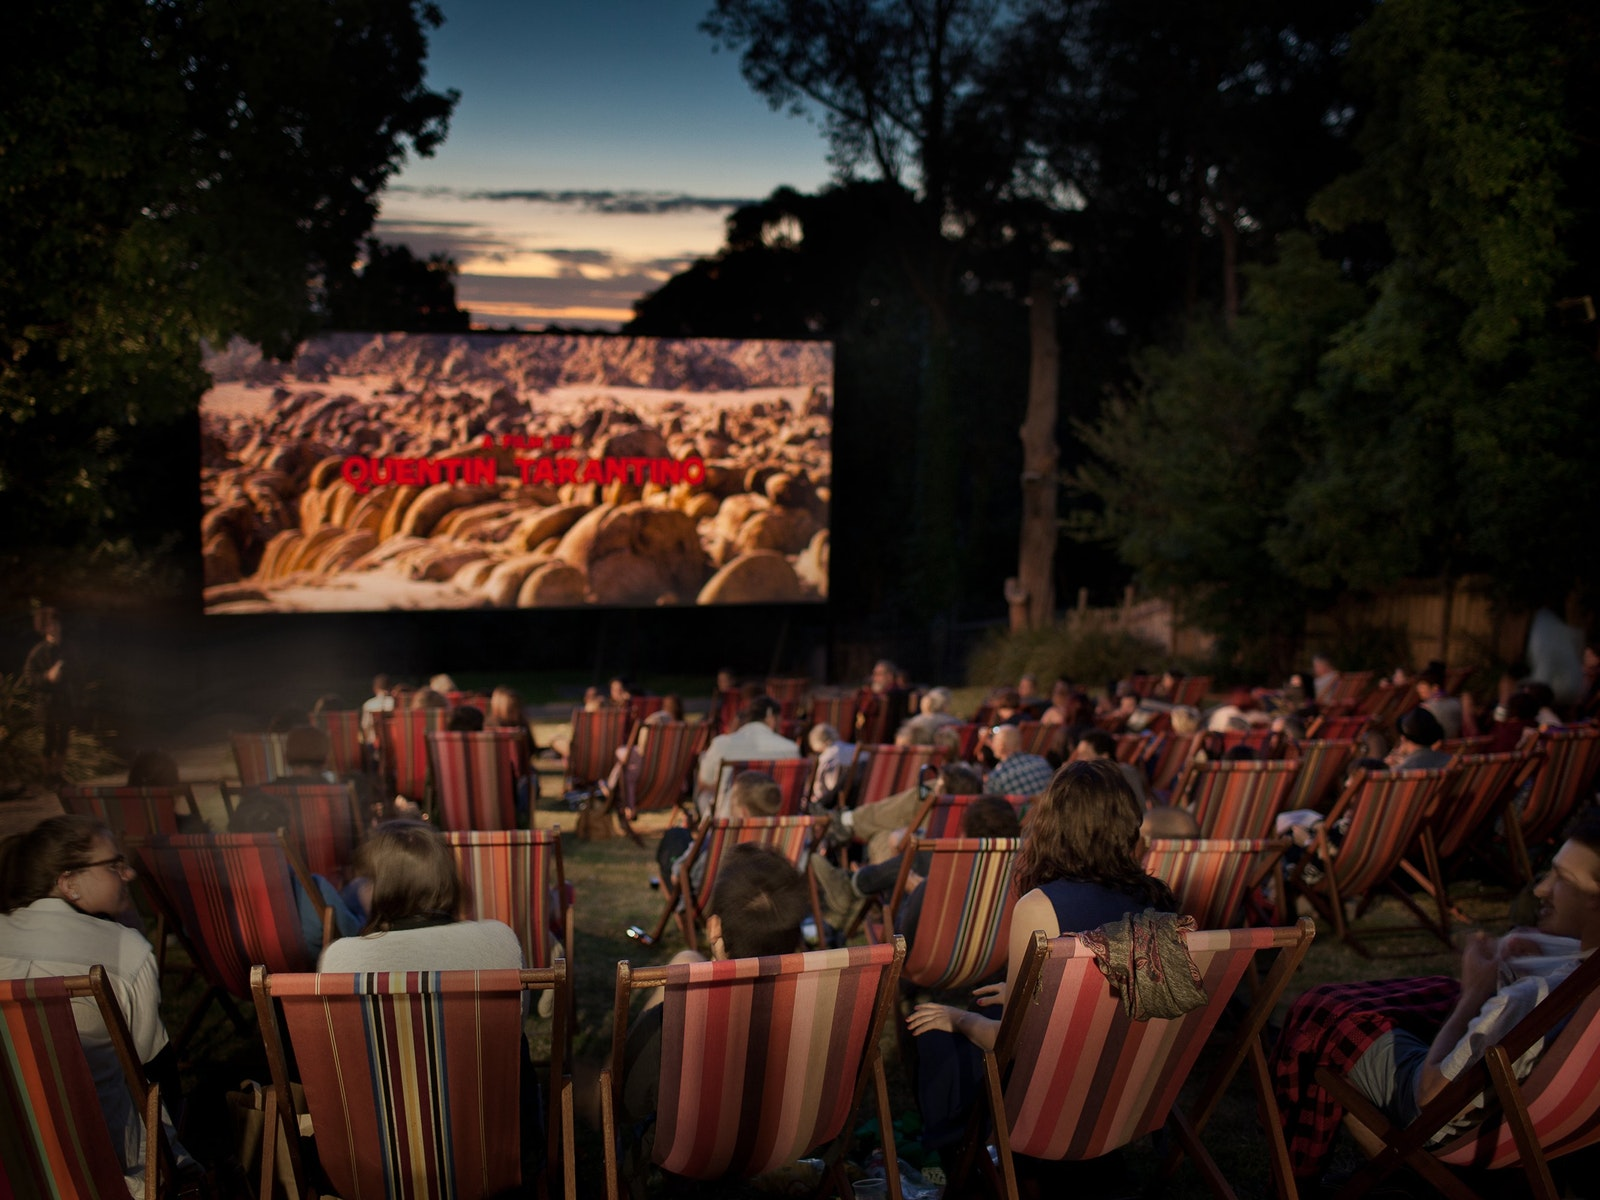 A wide variety of films plays at Cameo Outdoor